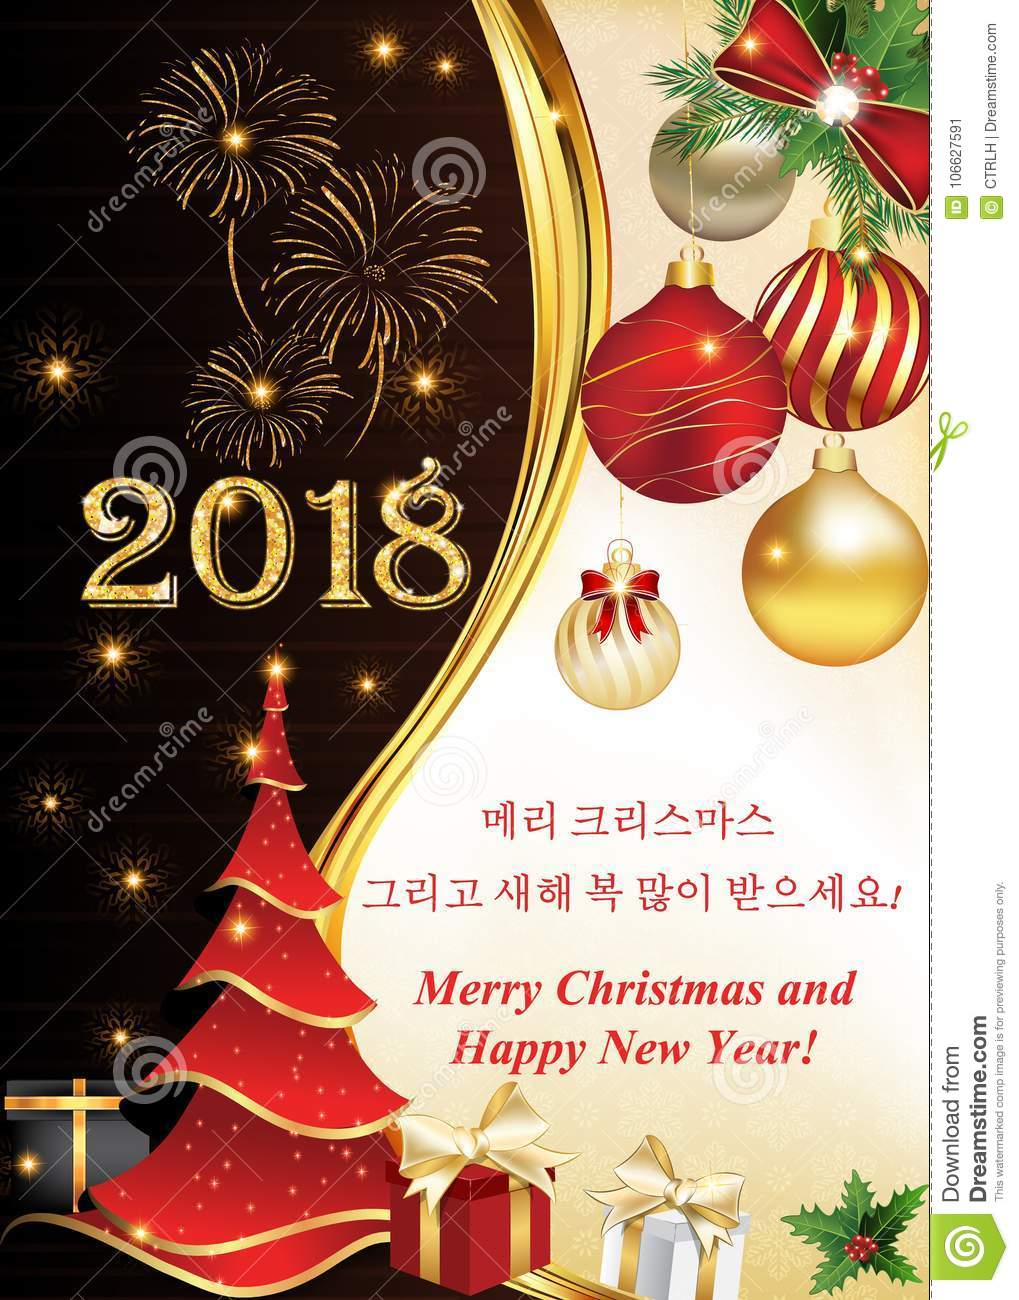 new year greeting card with message written in english and korean